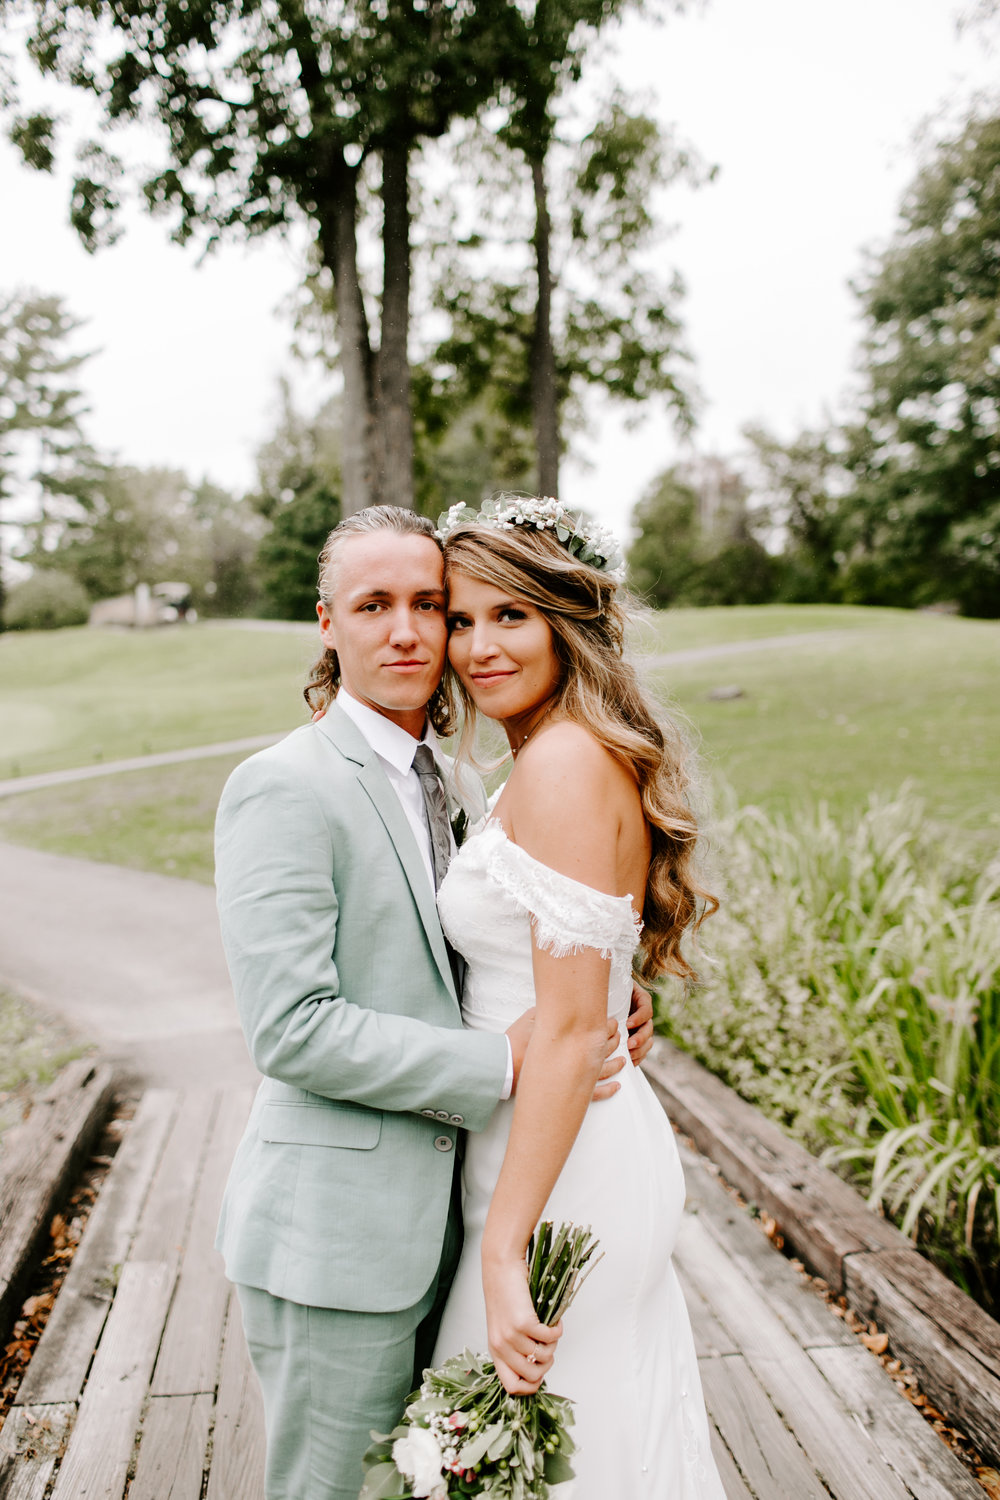 Ashleigh and Jordan Wedding at Hillcrest Country Club in Indianapolis Indiana by Emily Elyse Wehner Photography LLC-576.jpg